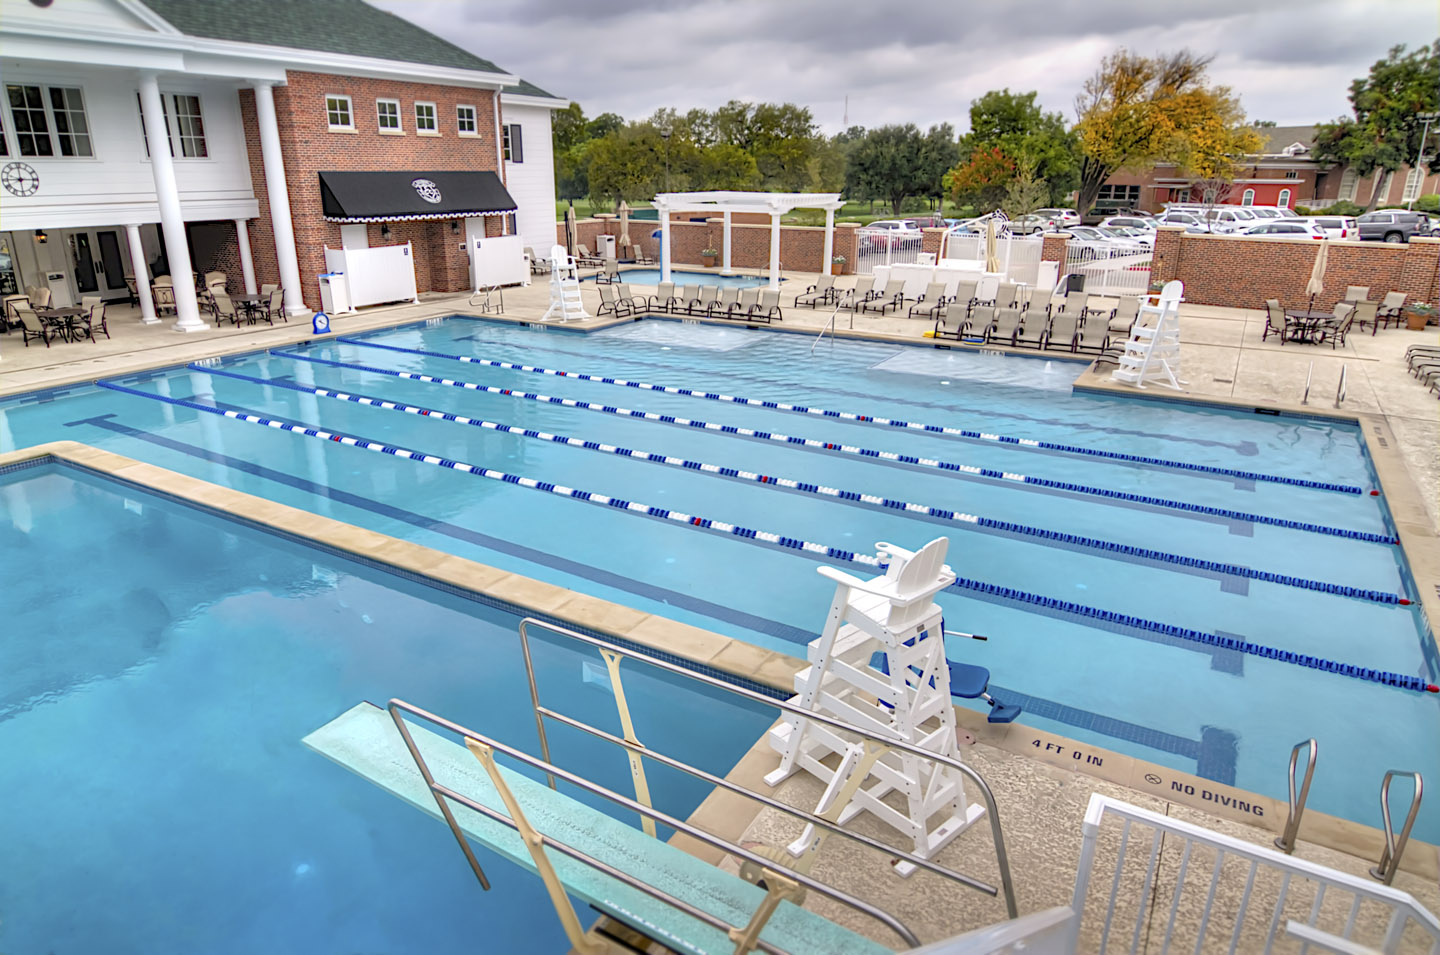 Gallery Pool A R T Commercial Swimming Pool Design Build